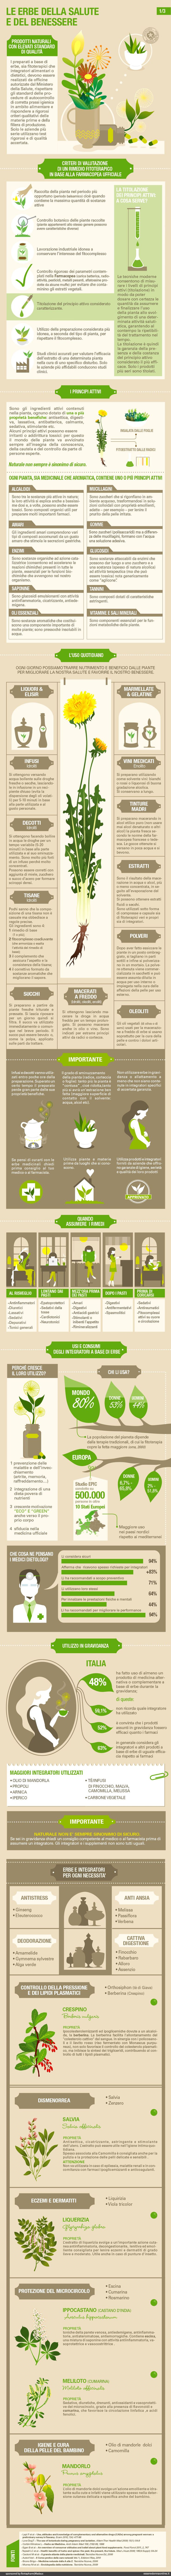 Kleland's infographicr for Esseredonnaonline.it